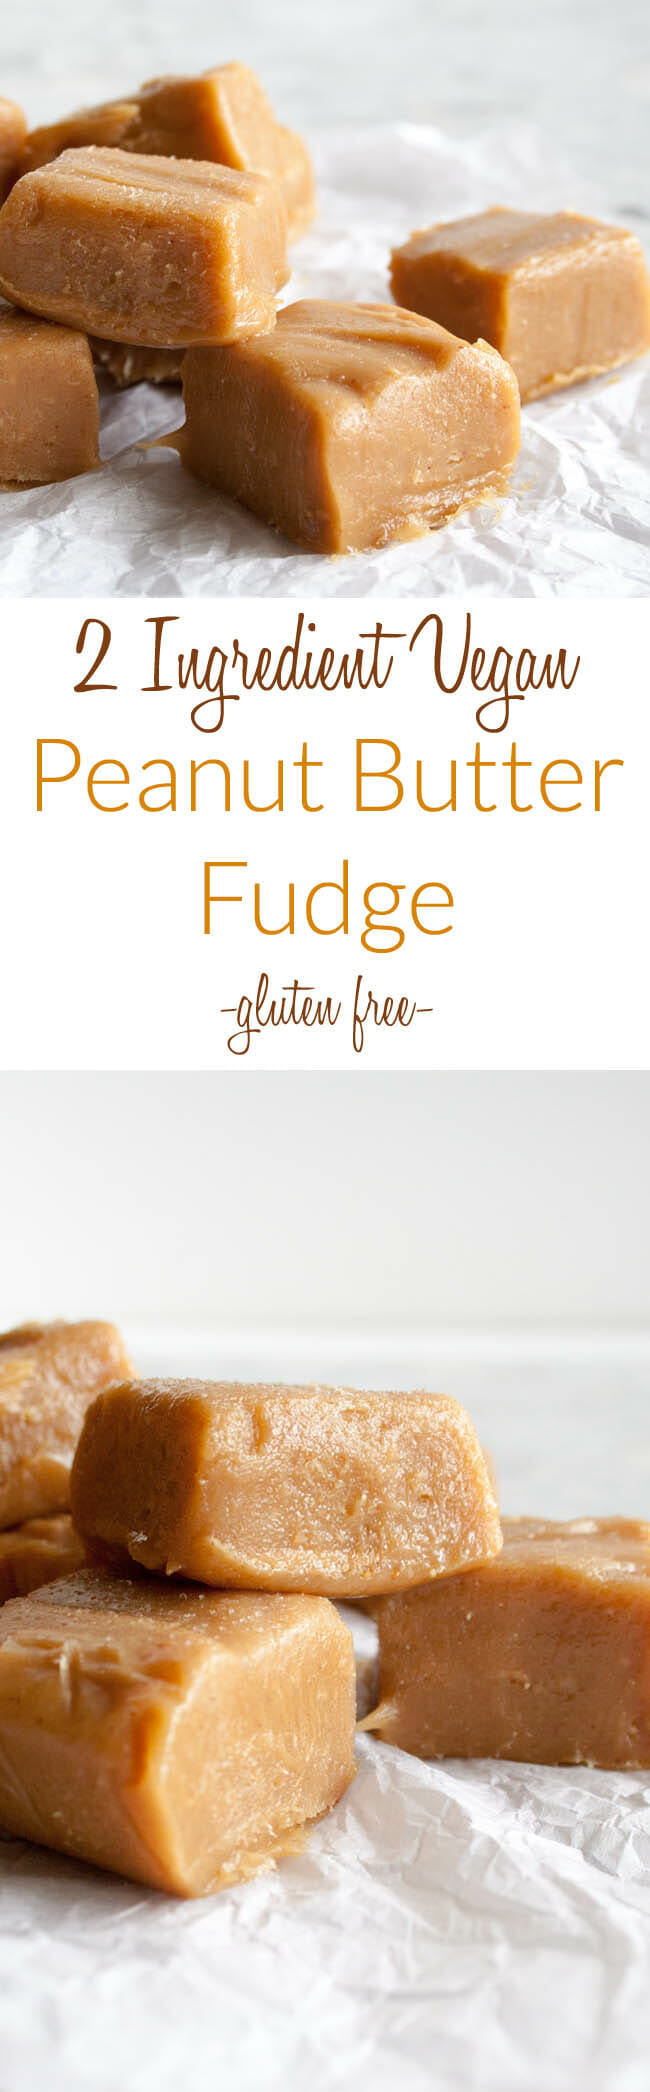 2 Ingredient Vegan Peanut Butter Fudge photo collage with two photos and text in between.